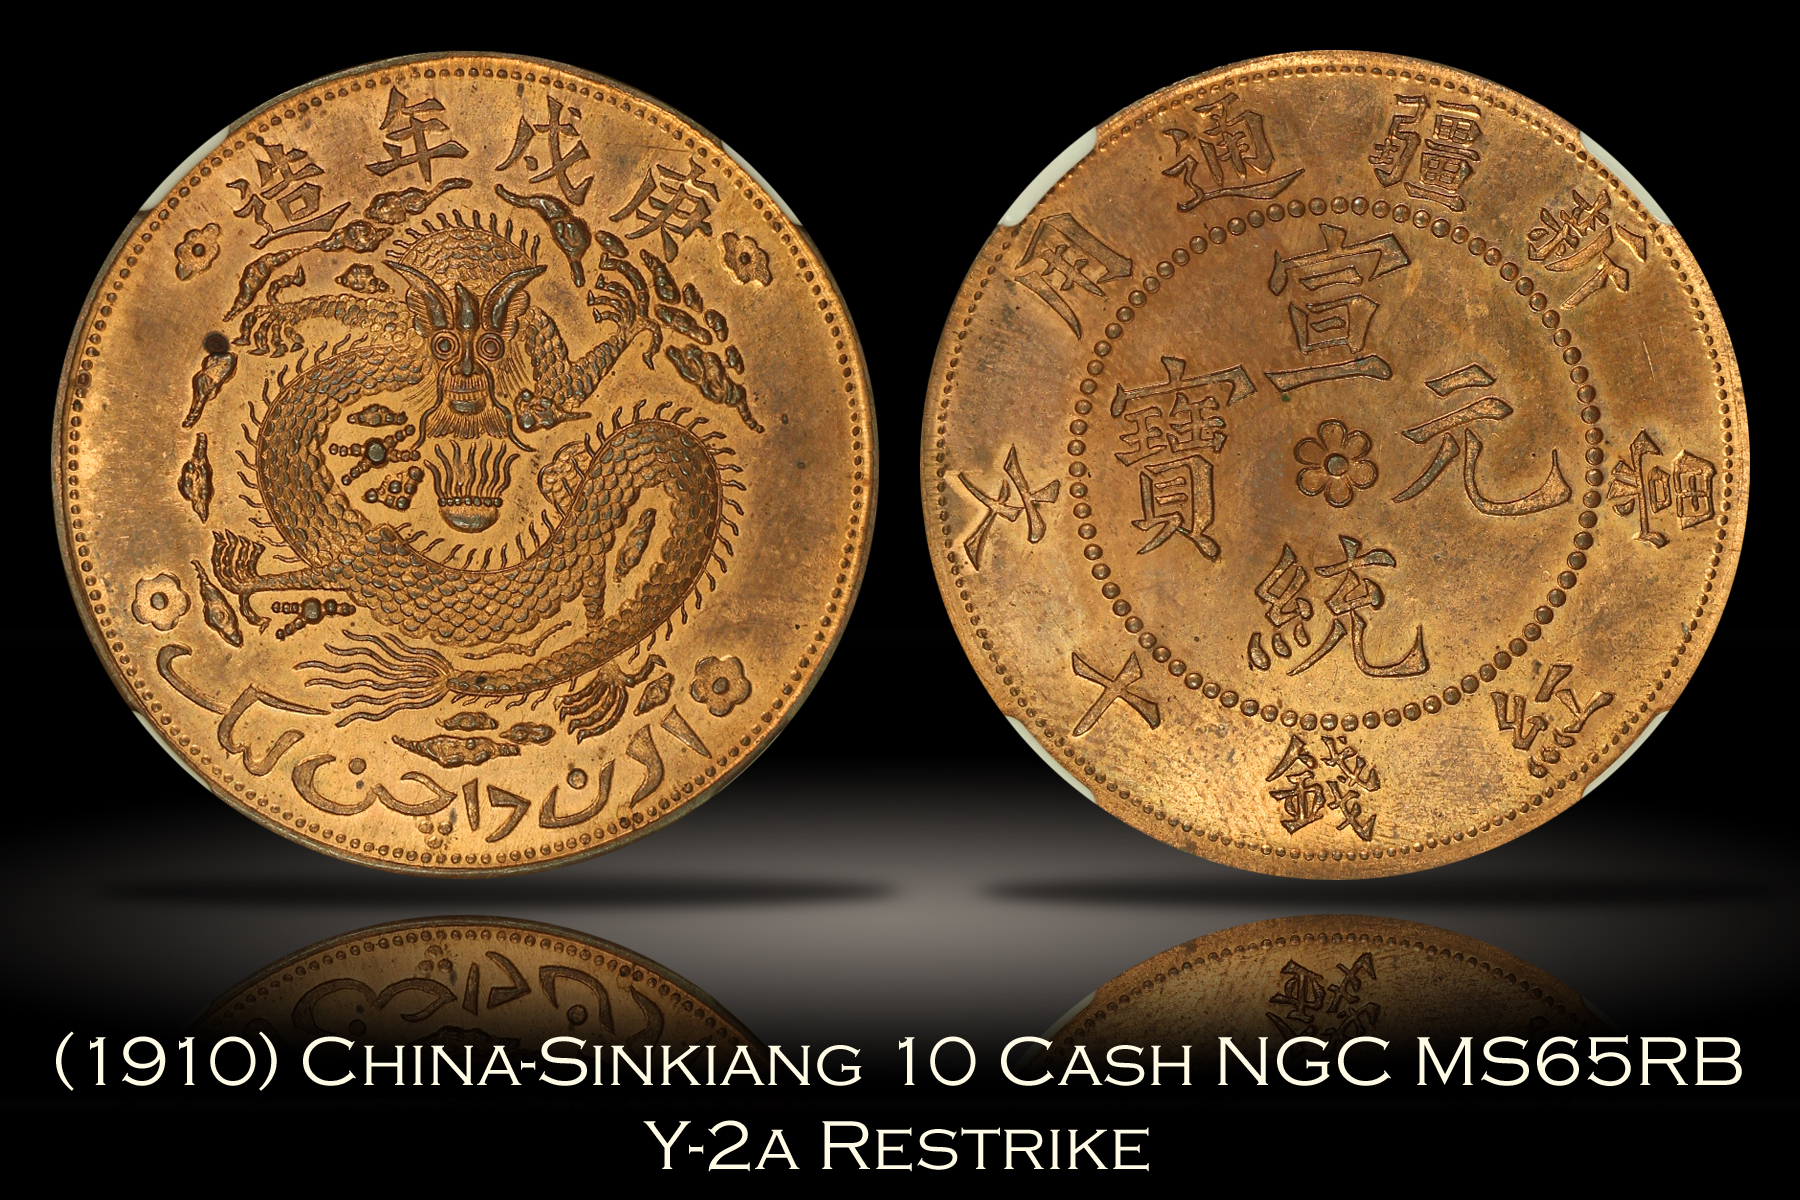 (1910) China-Sinkiang 10 Cash Restrike NGC MS65RB Wings